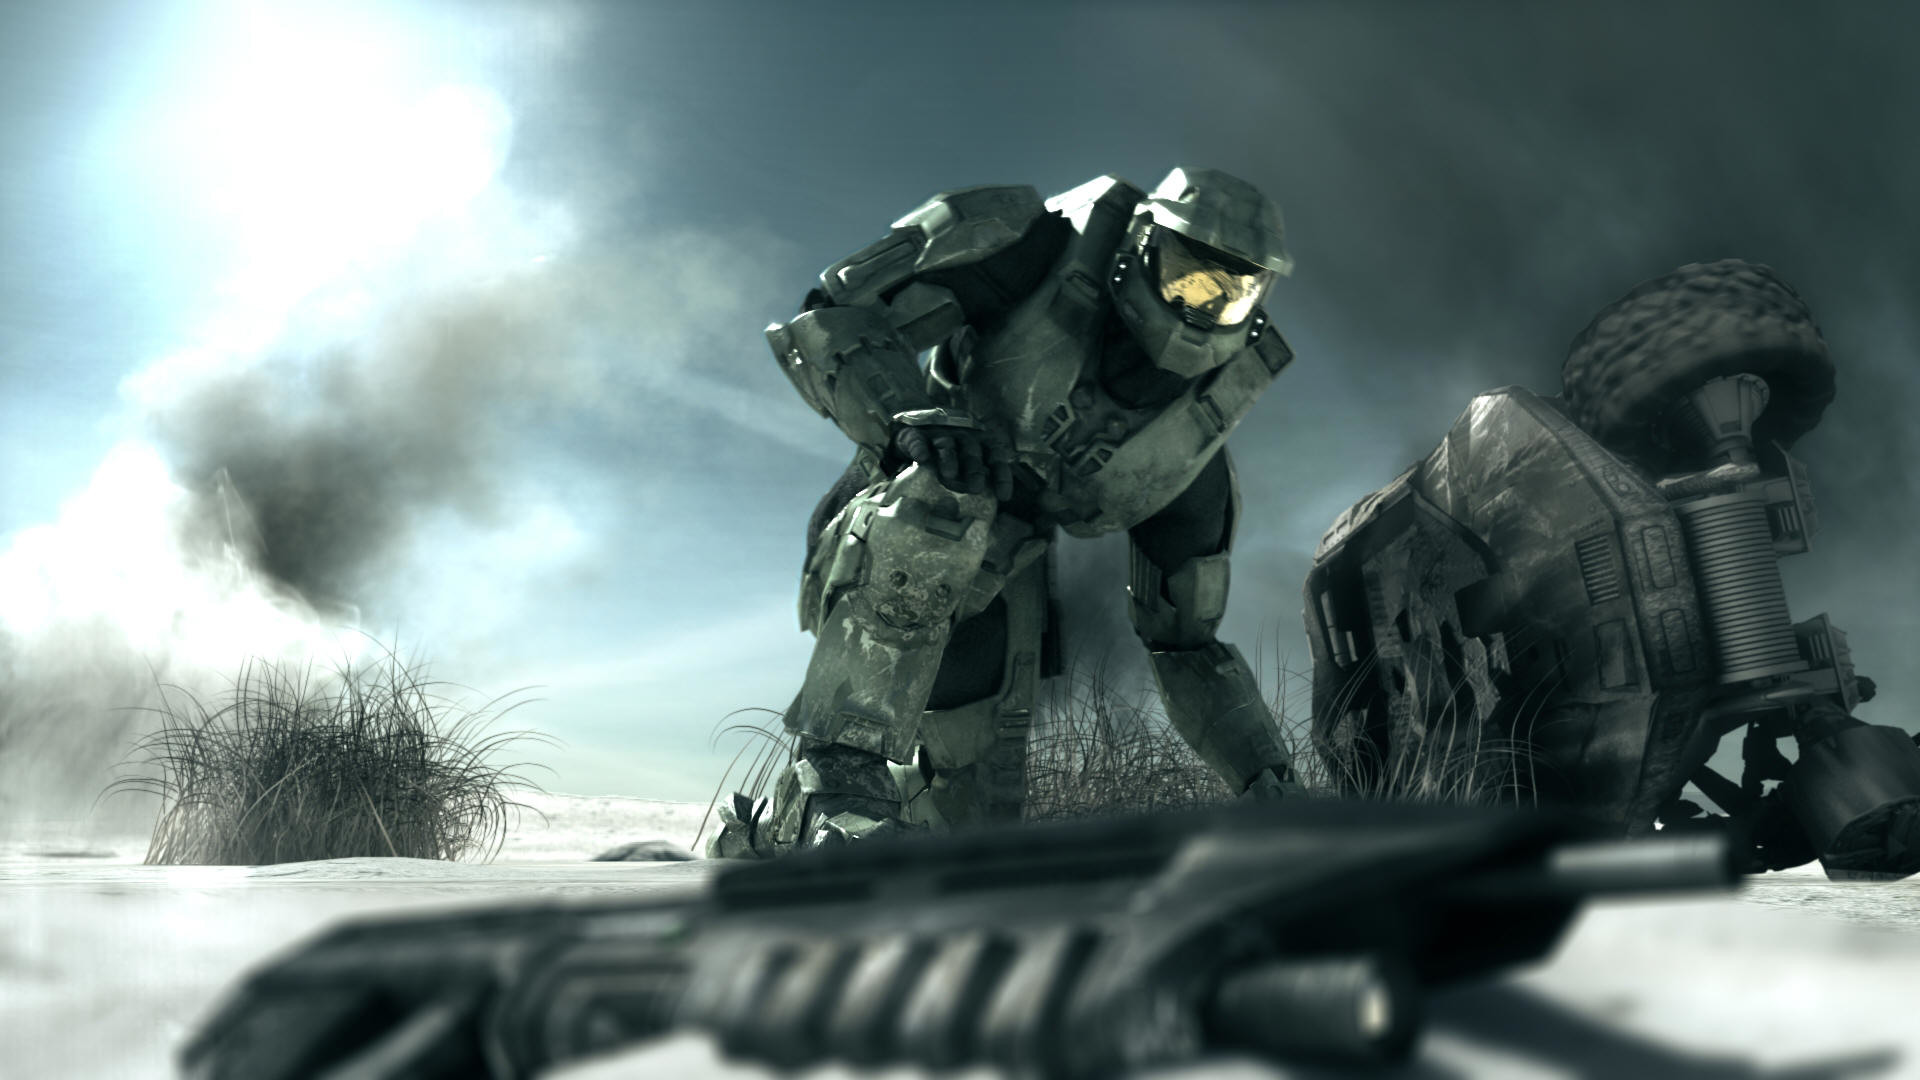 1920x1080 Halo Master Chief Wallpapers Amazing Wallpaperz